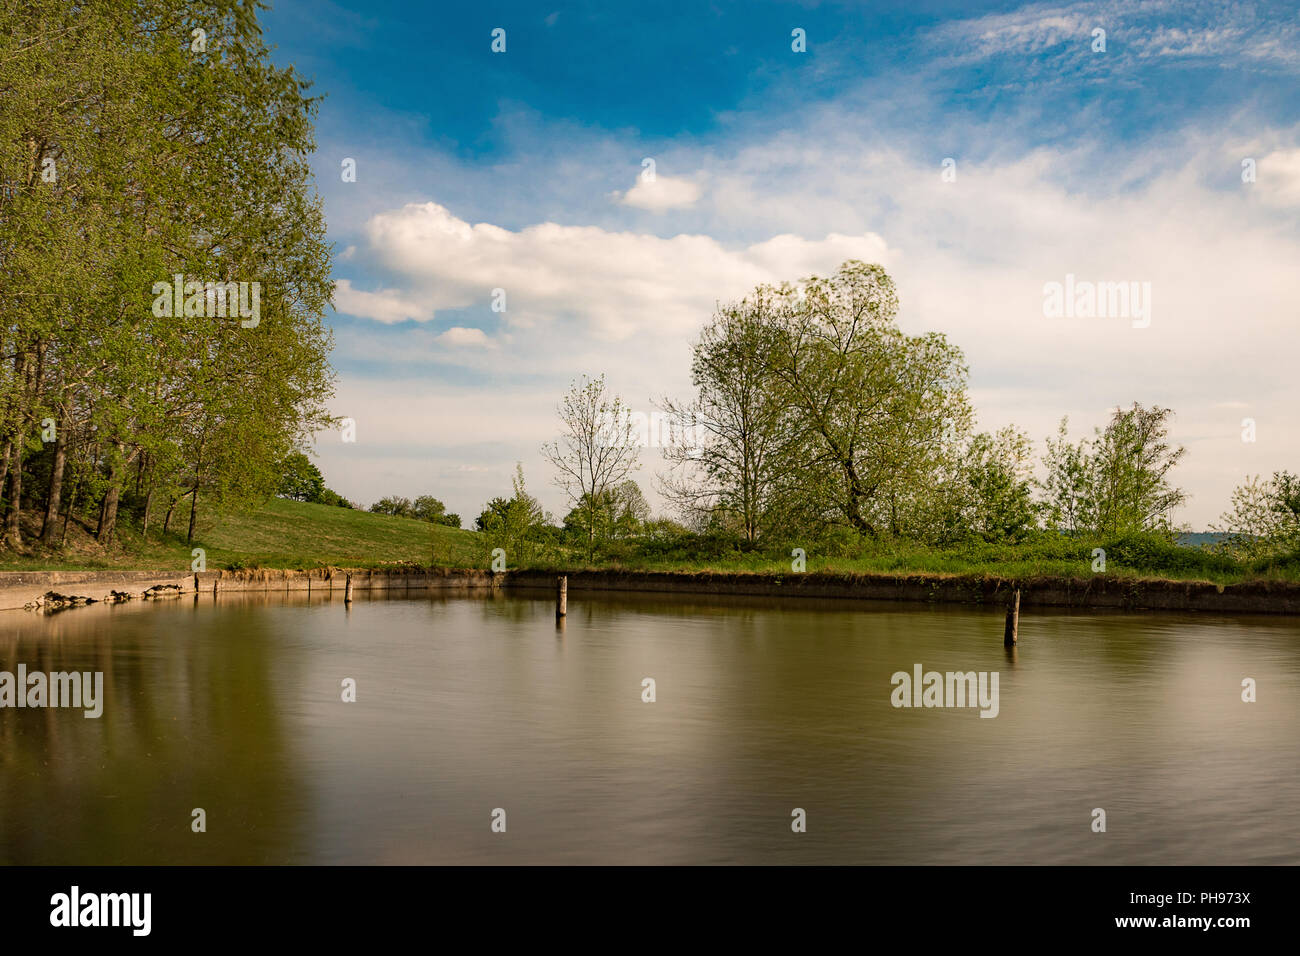 The Forgotten Pool - Stock Image